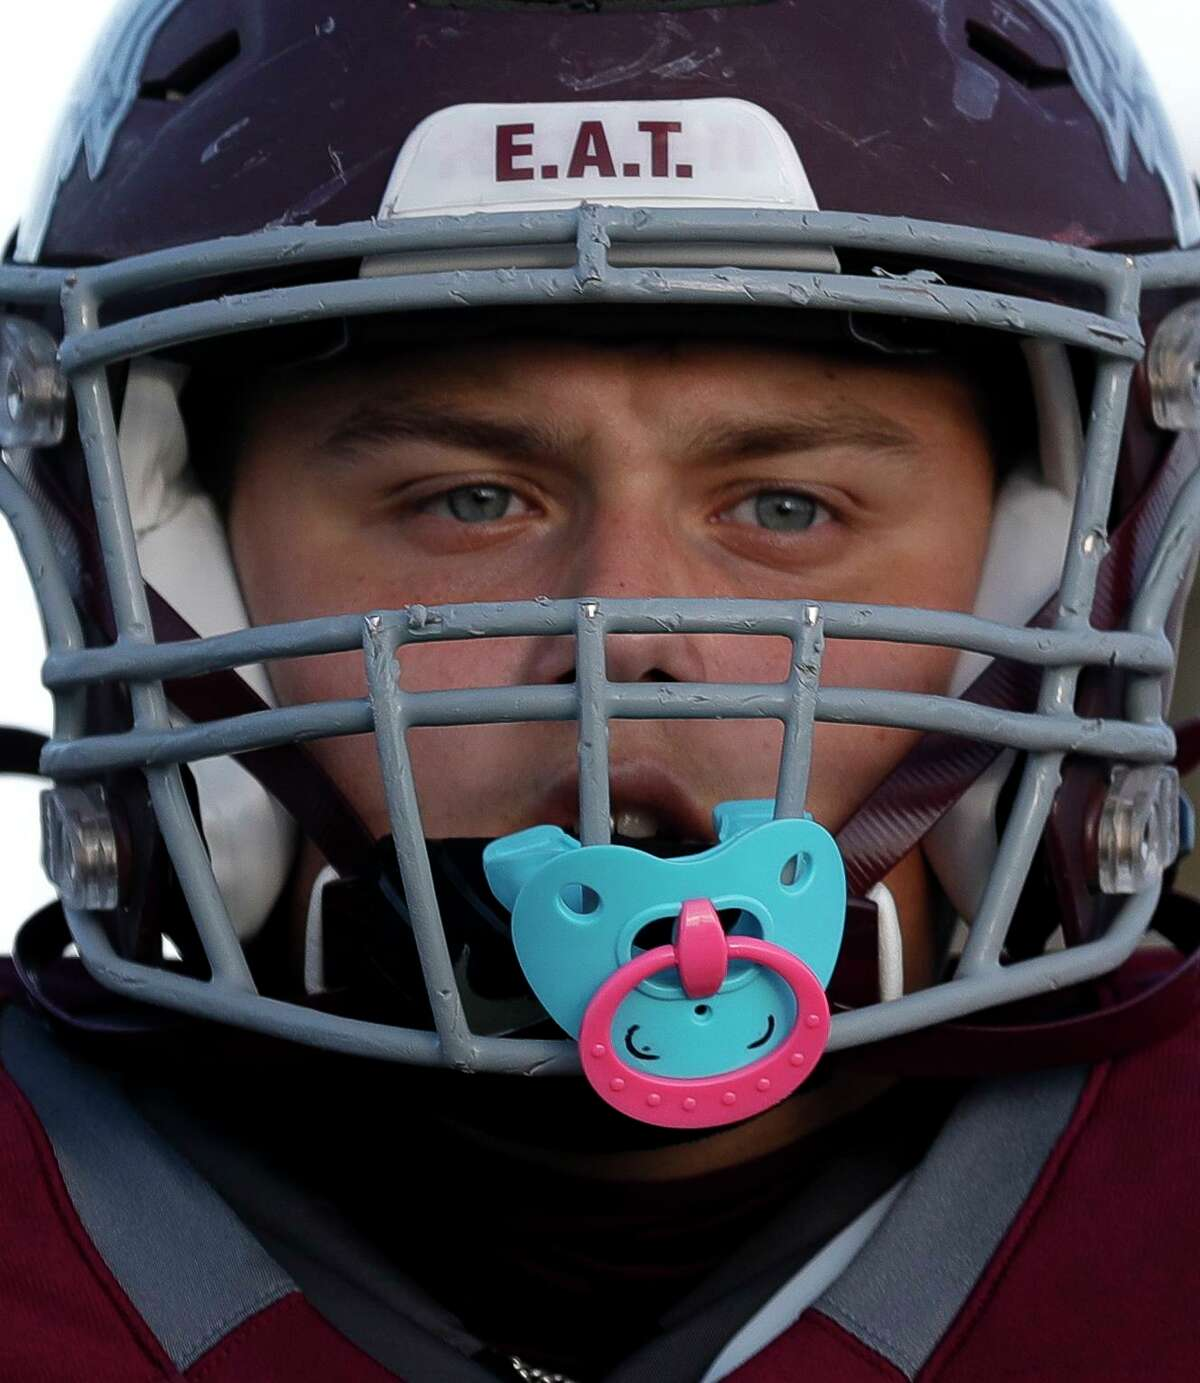 Magnolia offensive linemen Carson Mitchell's mouthpiece resembles a child's pacifier as he warms up before a non-district high school football game at Bulldog Stadium, Friday, Sept. 25, 2020, in Magnolia.